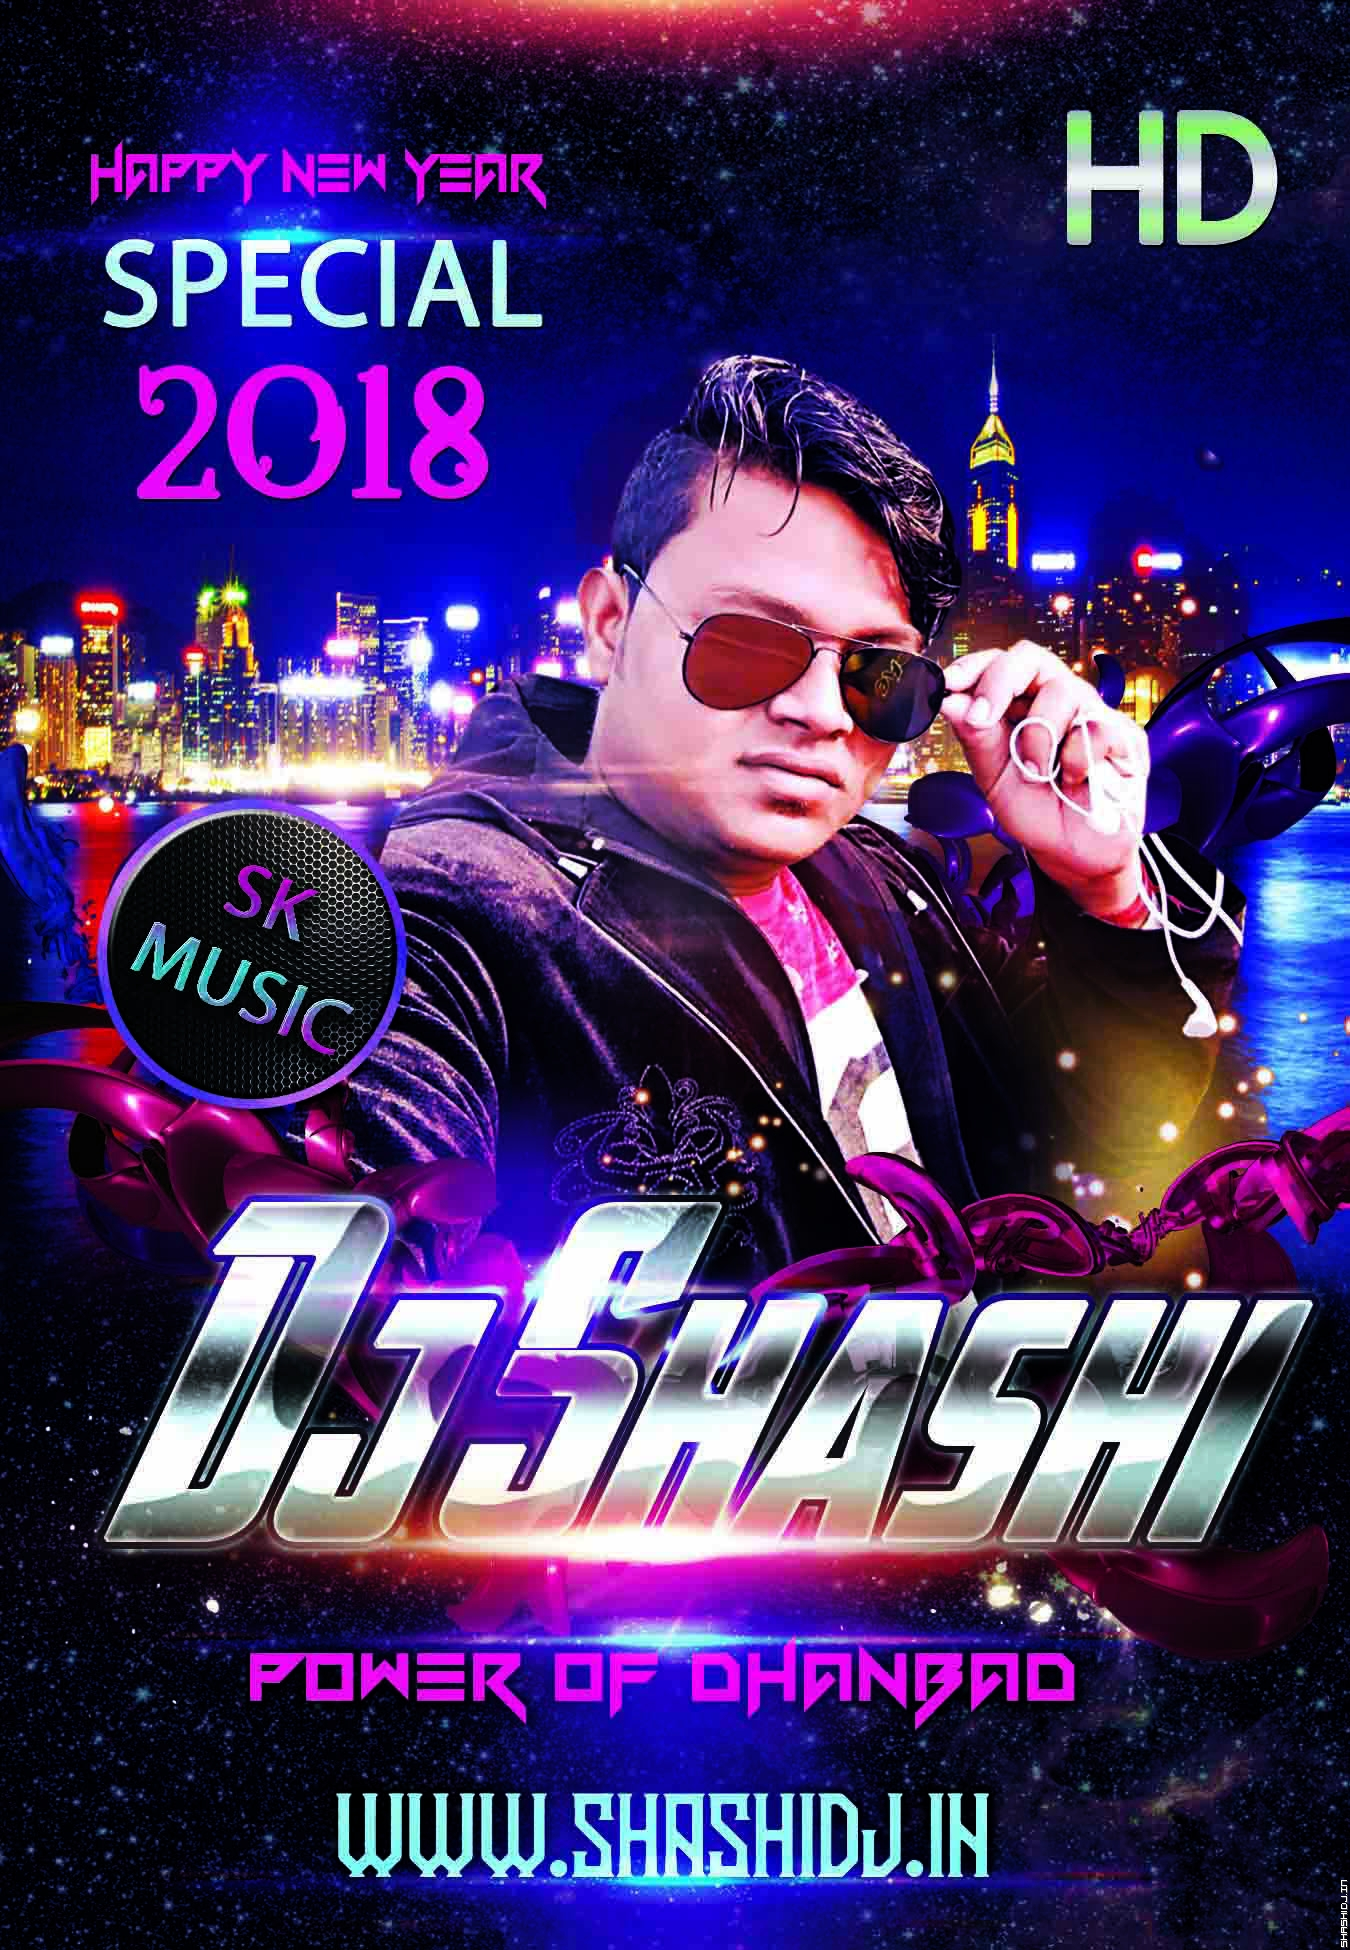 Bajata Shashi Sound Nach Ae Bhaiwa Re Solid Jhankar Dholki Mix Dj Shashi.mp3